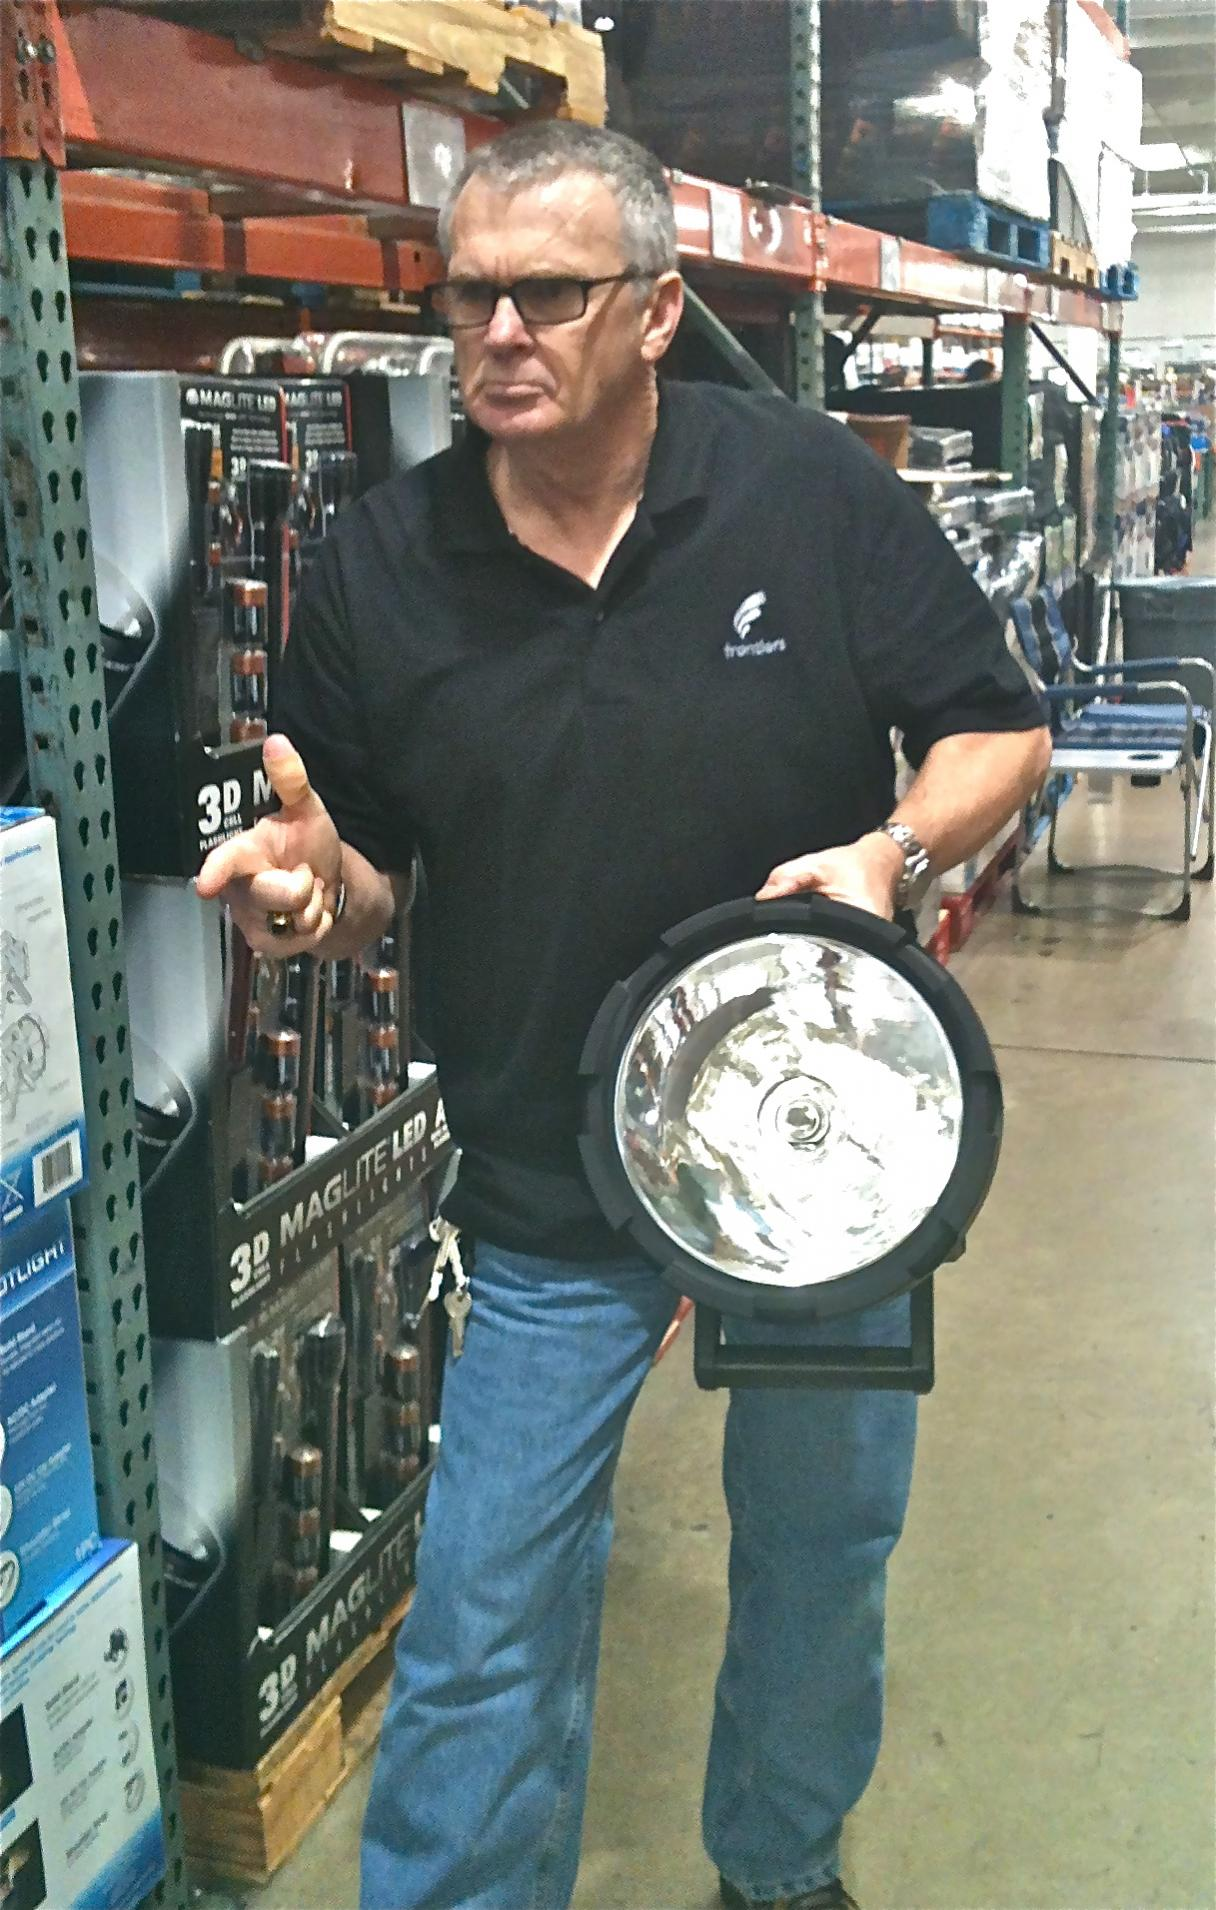 Check out my new taclight!!-costco-taclight.jpg